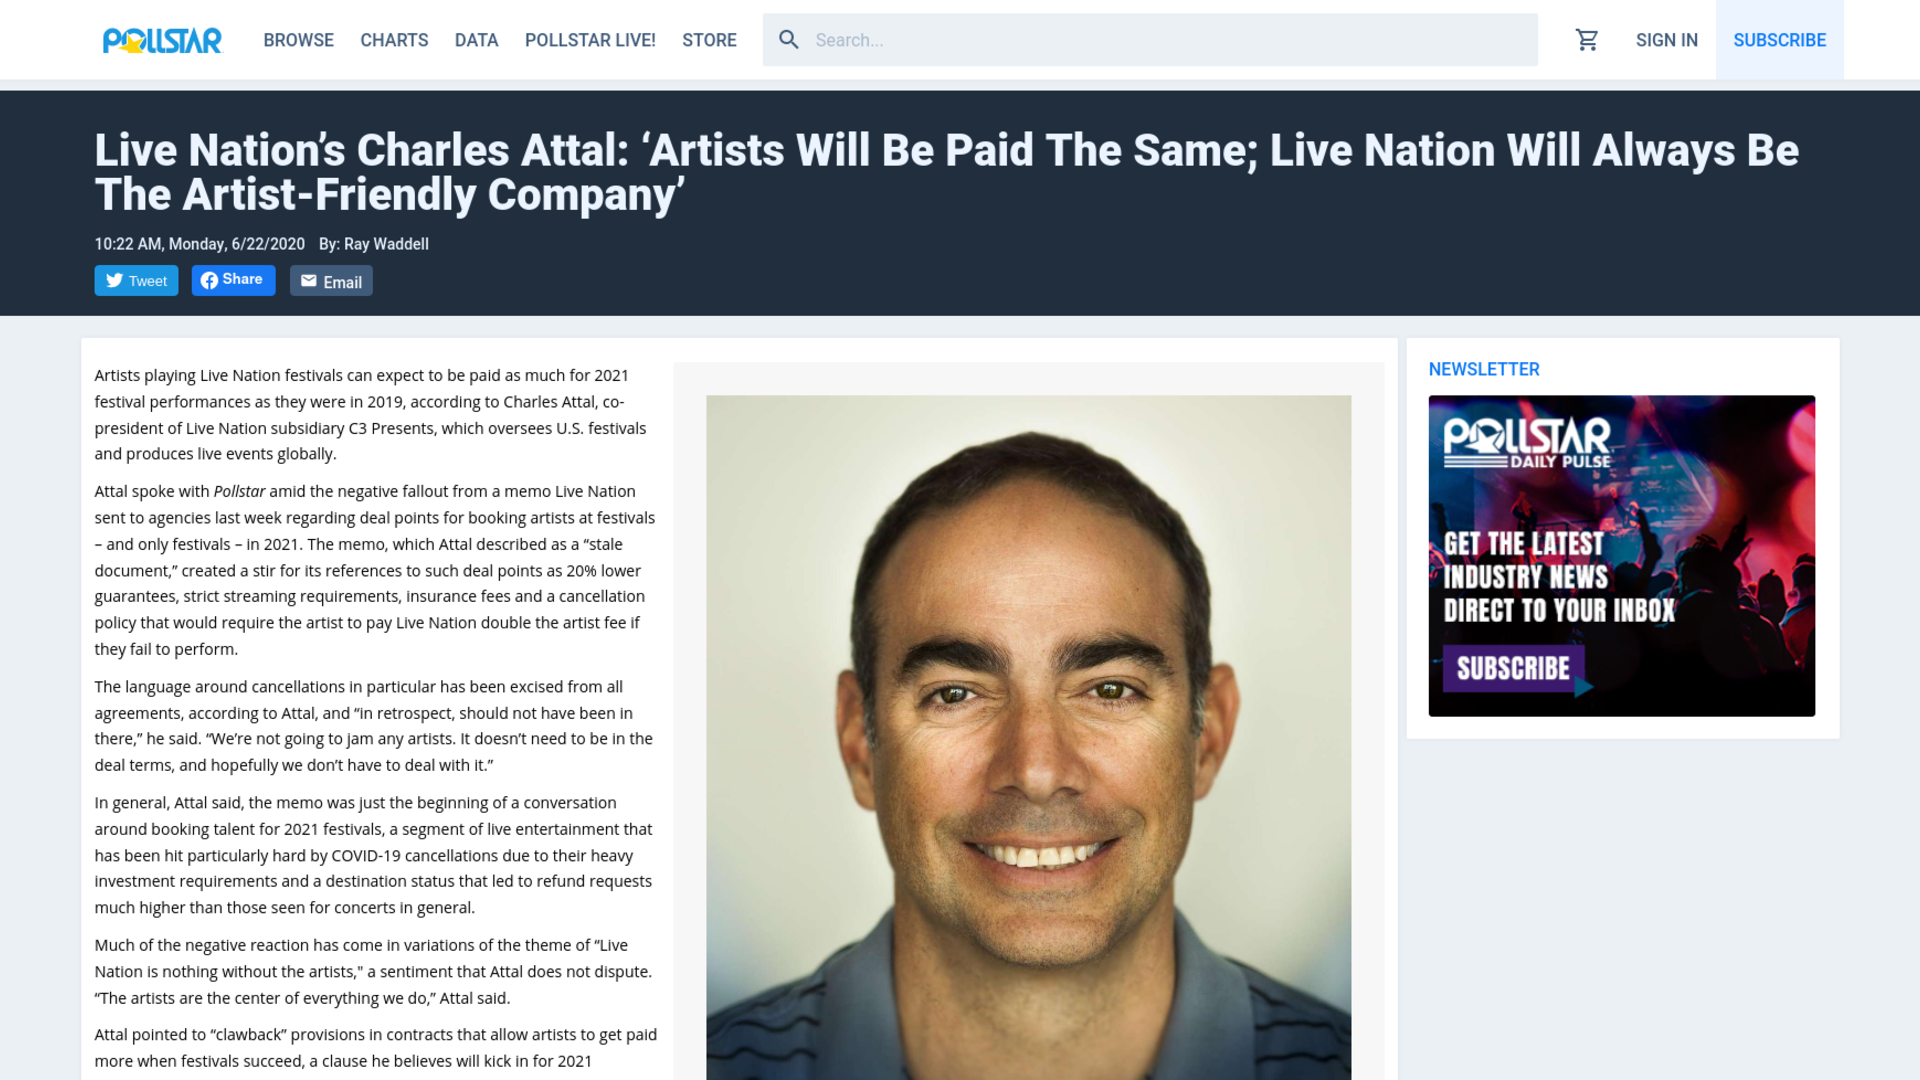 Fairness Rocks News Live Nation's Charles Attal: 'Artists Will Be Paid The Same; Live Nation Will Always Be The Artist-Friendly Company'